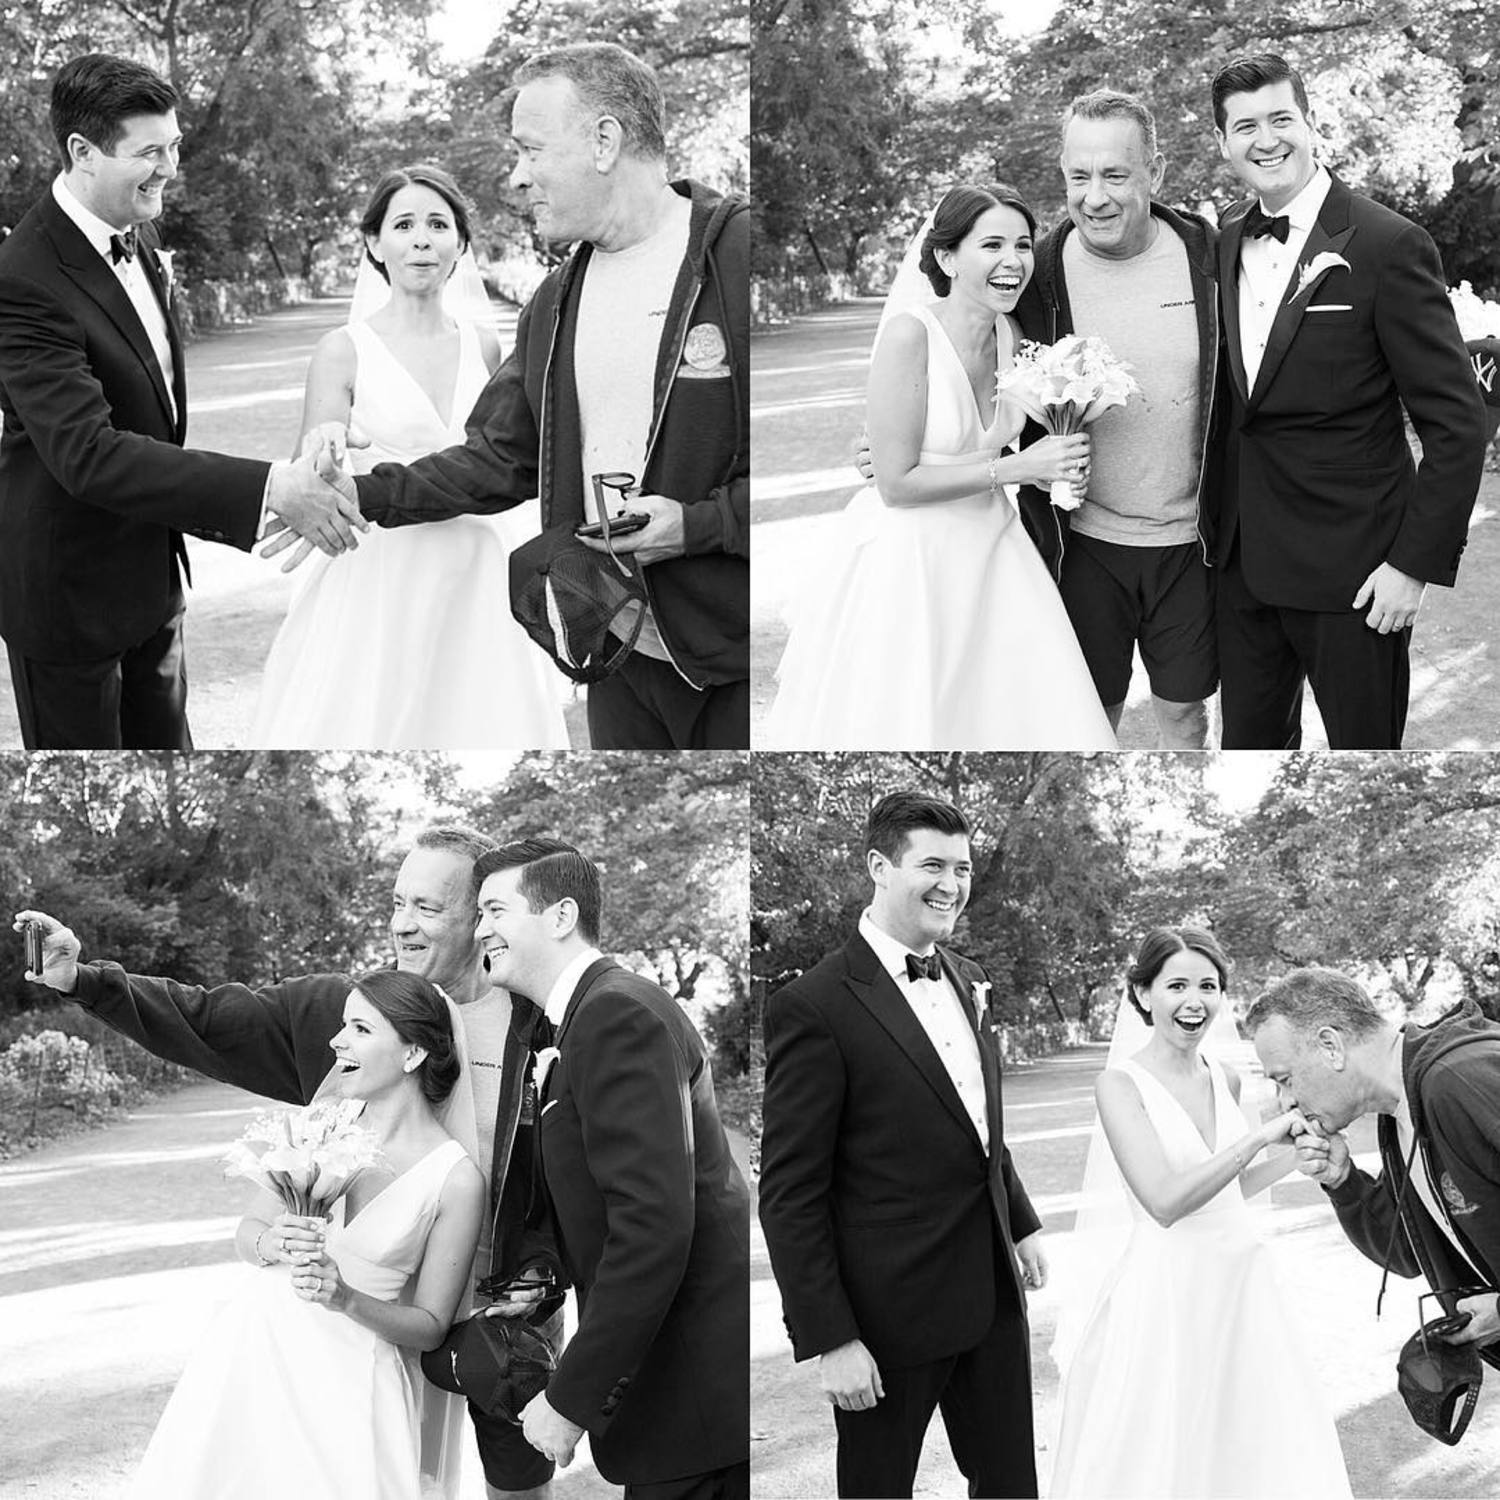 Yesterday's wedding was so beautiful! Elisabeth and Ryan you planned one amazing celebration. The icing on the cake was @tomhanks stopping in Central Park to wish them congratulations. #megmillerphotography #newyork #nyc #nyminute #celebrity #brideandgroom #tomhanks #weddingdress #wedding #weddingday #blacktie #centralpark #blackandwhite #huffpostido #stylemepretty #weddinginspiration #selfie #celebritysighting